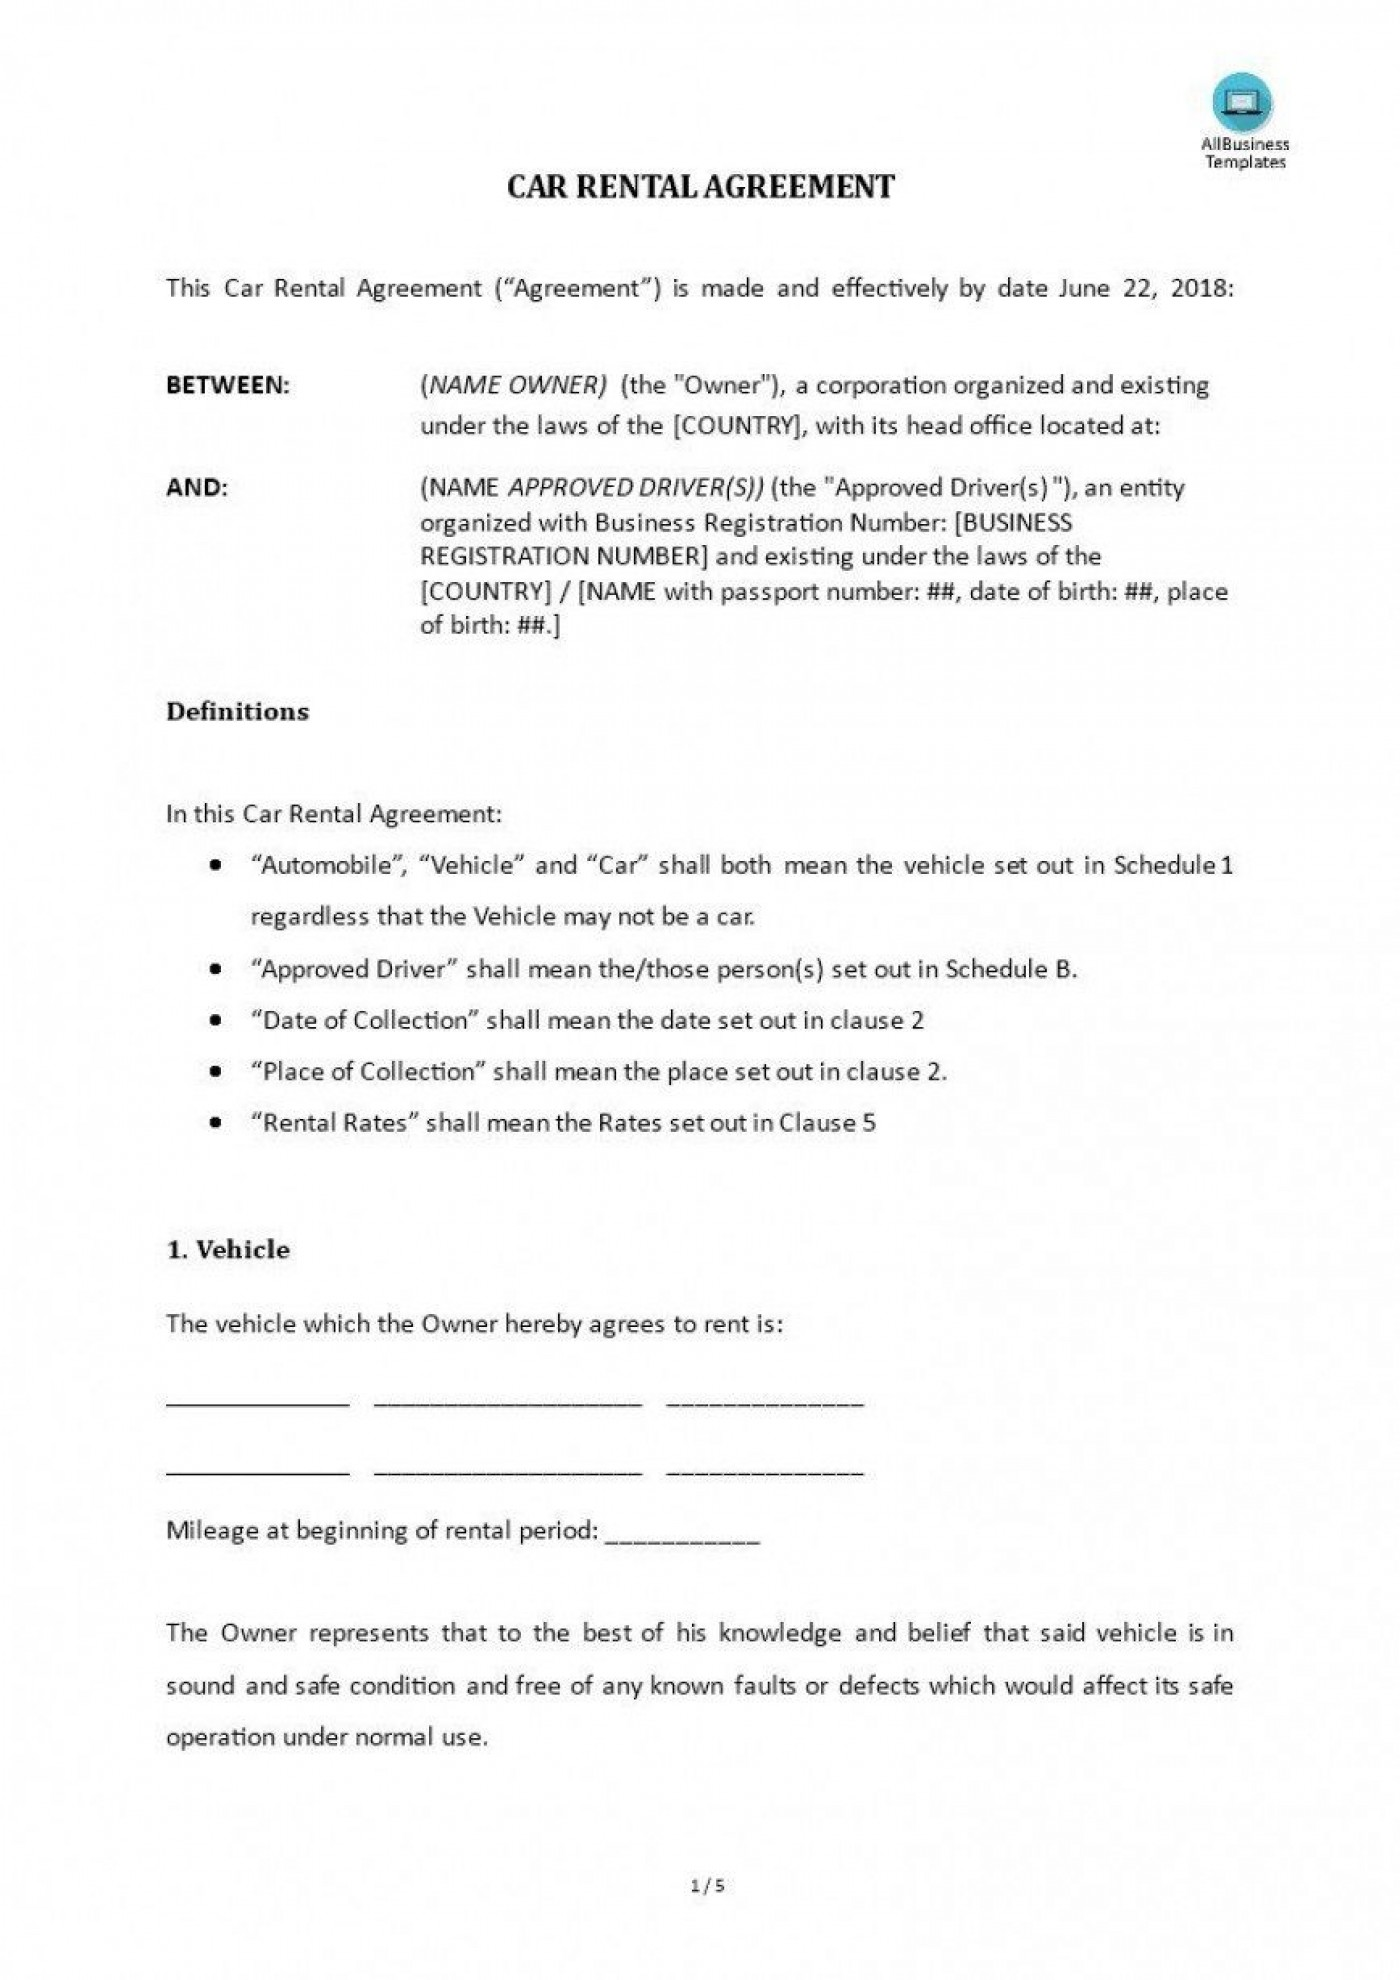 006 Impressive Template For Car Hire Agreement Highest Clarity 1400